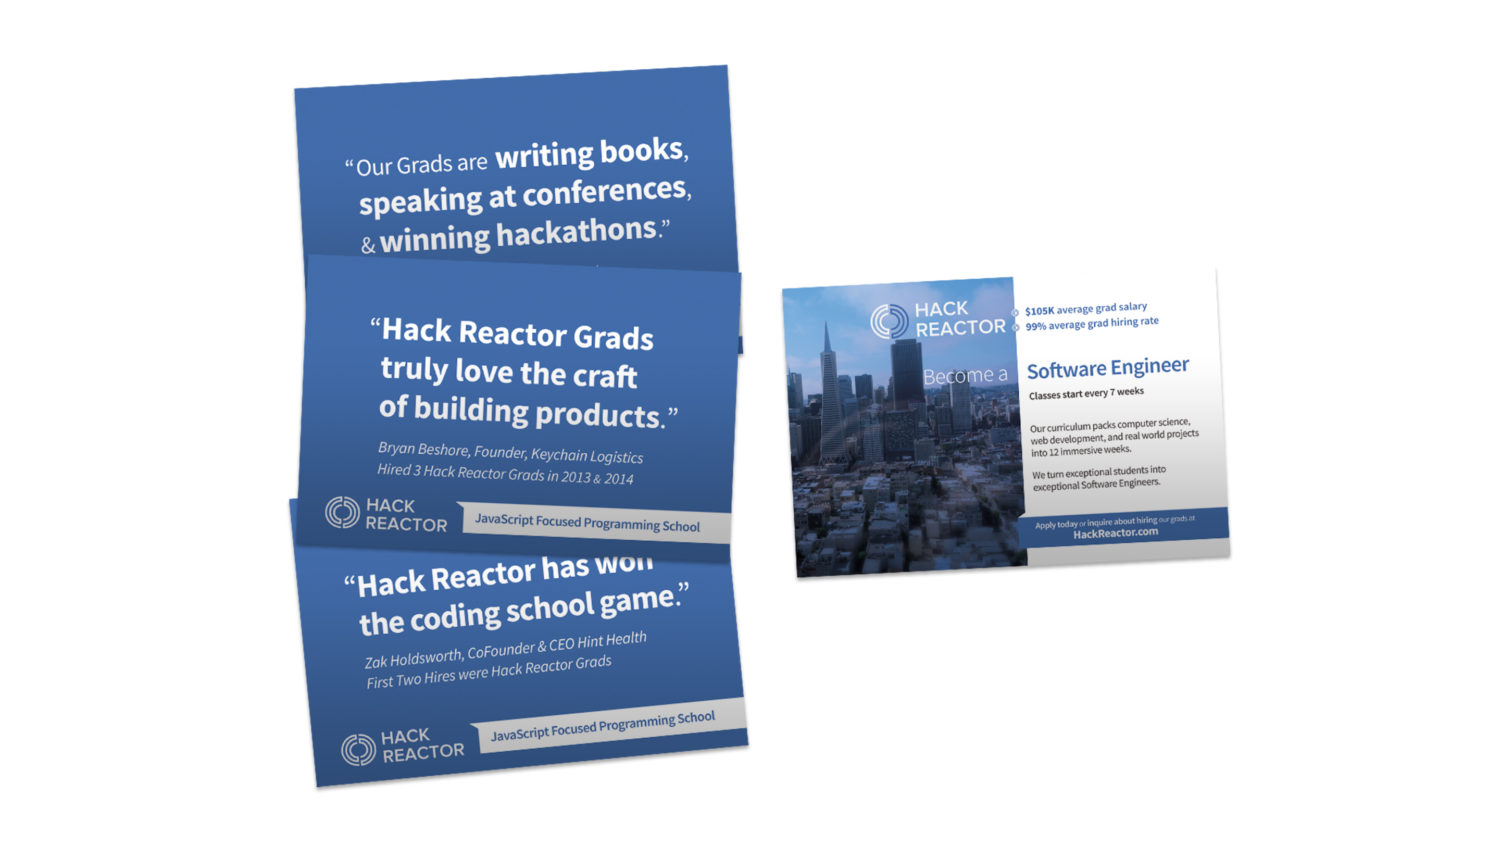 Hack Reactor Direct Mail Postcard Image